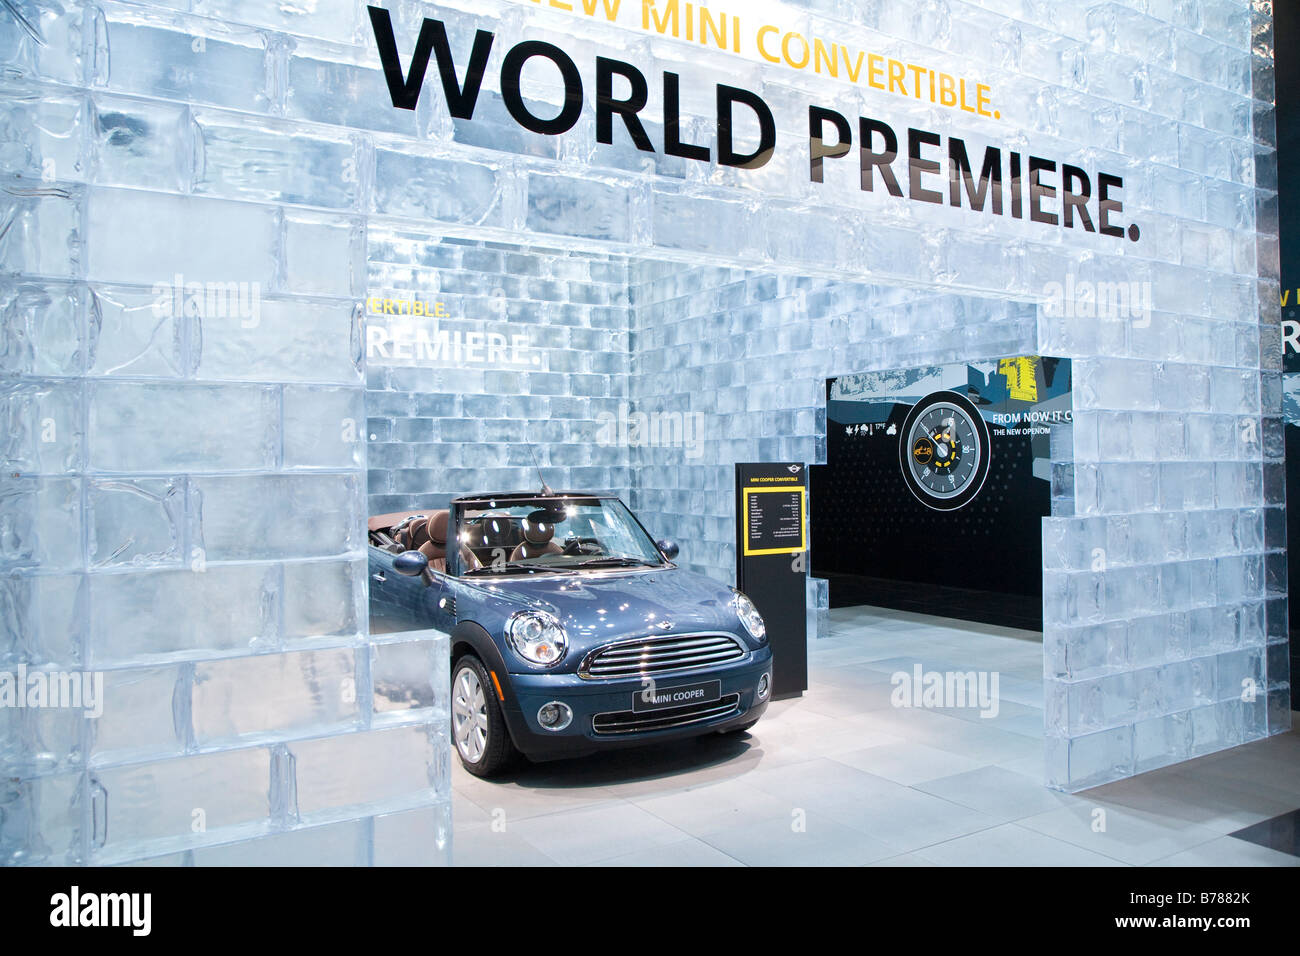 Detroit Michigan The Mini Cooper convertible on display at the North American International Auto Show - Stock Image